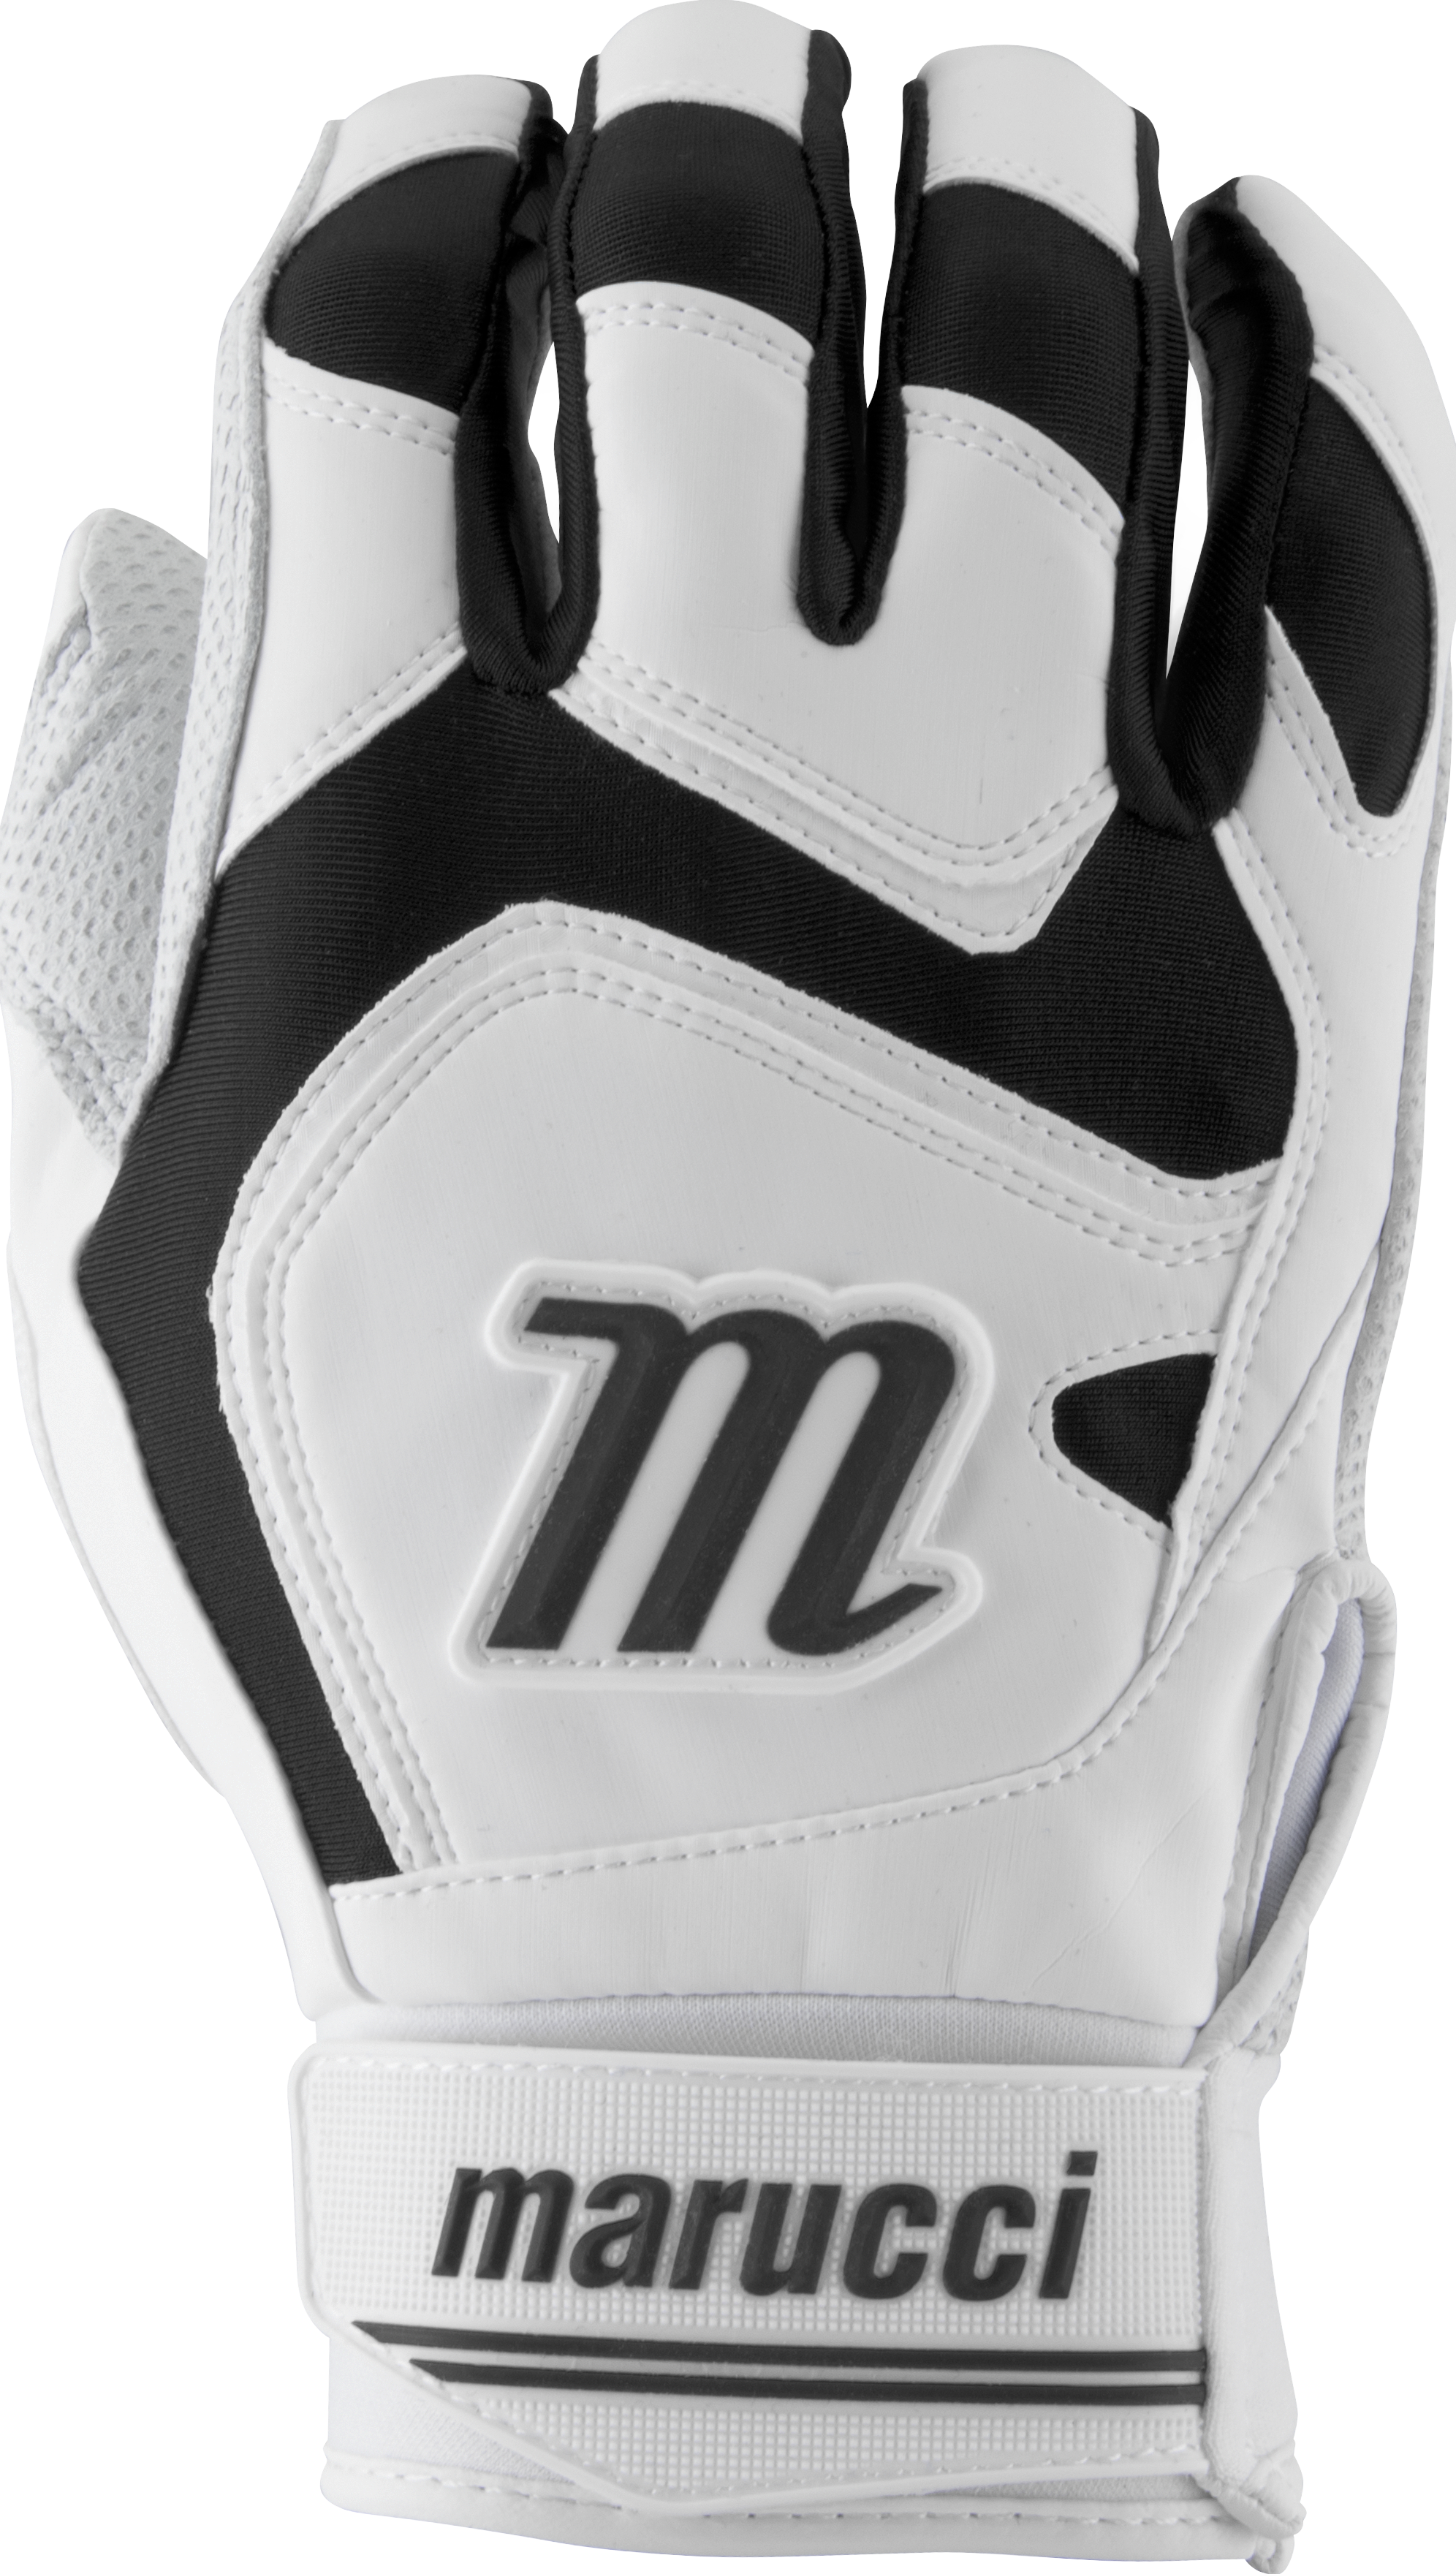 marucci-signature-batting-gloves-mbgsgn2-1-pair-white-black-adult-large MBGSGN2-WBK-AL  849817096581 2019 Model MBGSGN2-W/BK Consistency And Craftsmanship Commitment To Quality And Understanding